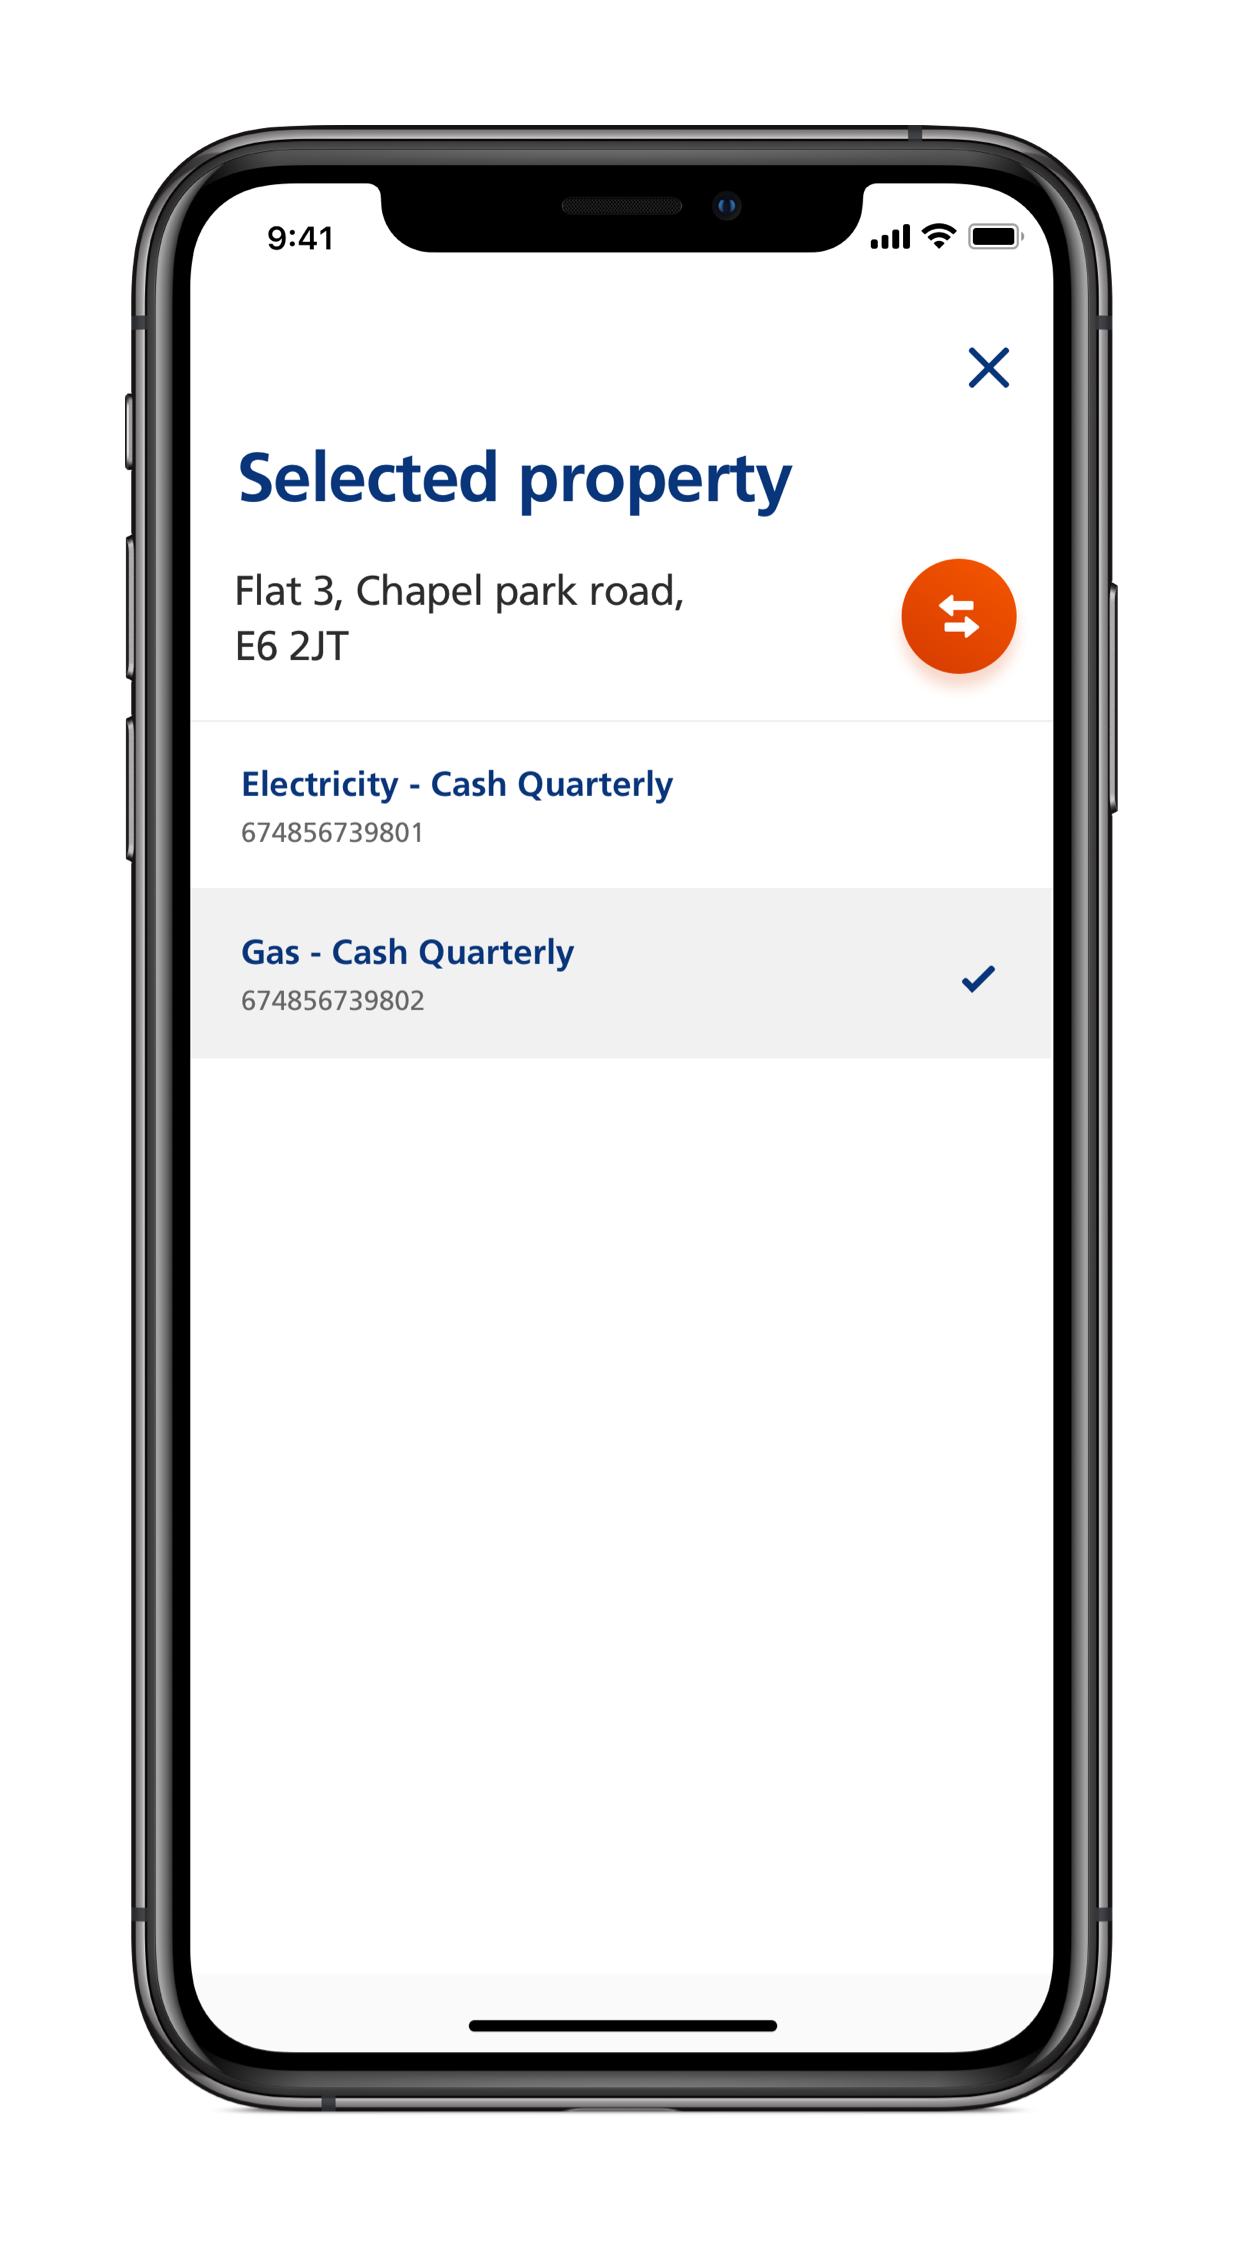 Screenshot of EDF mobile app and how to switch between customer accounts